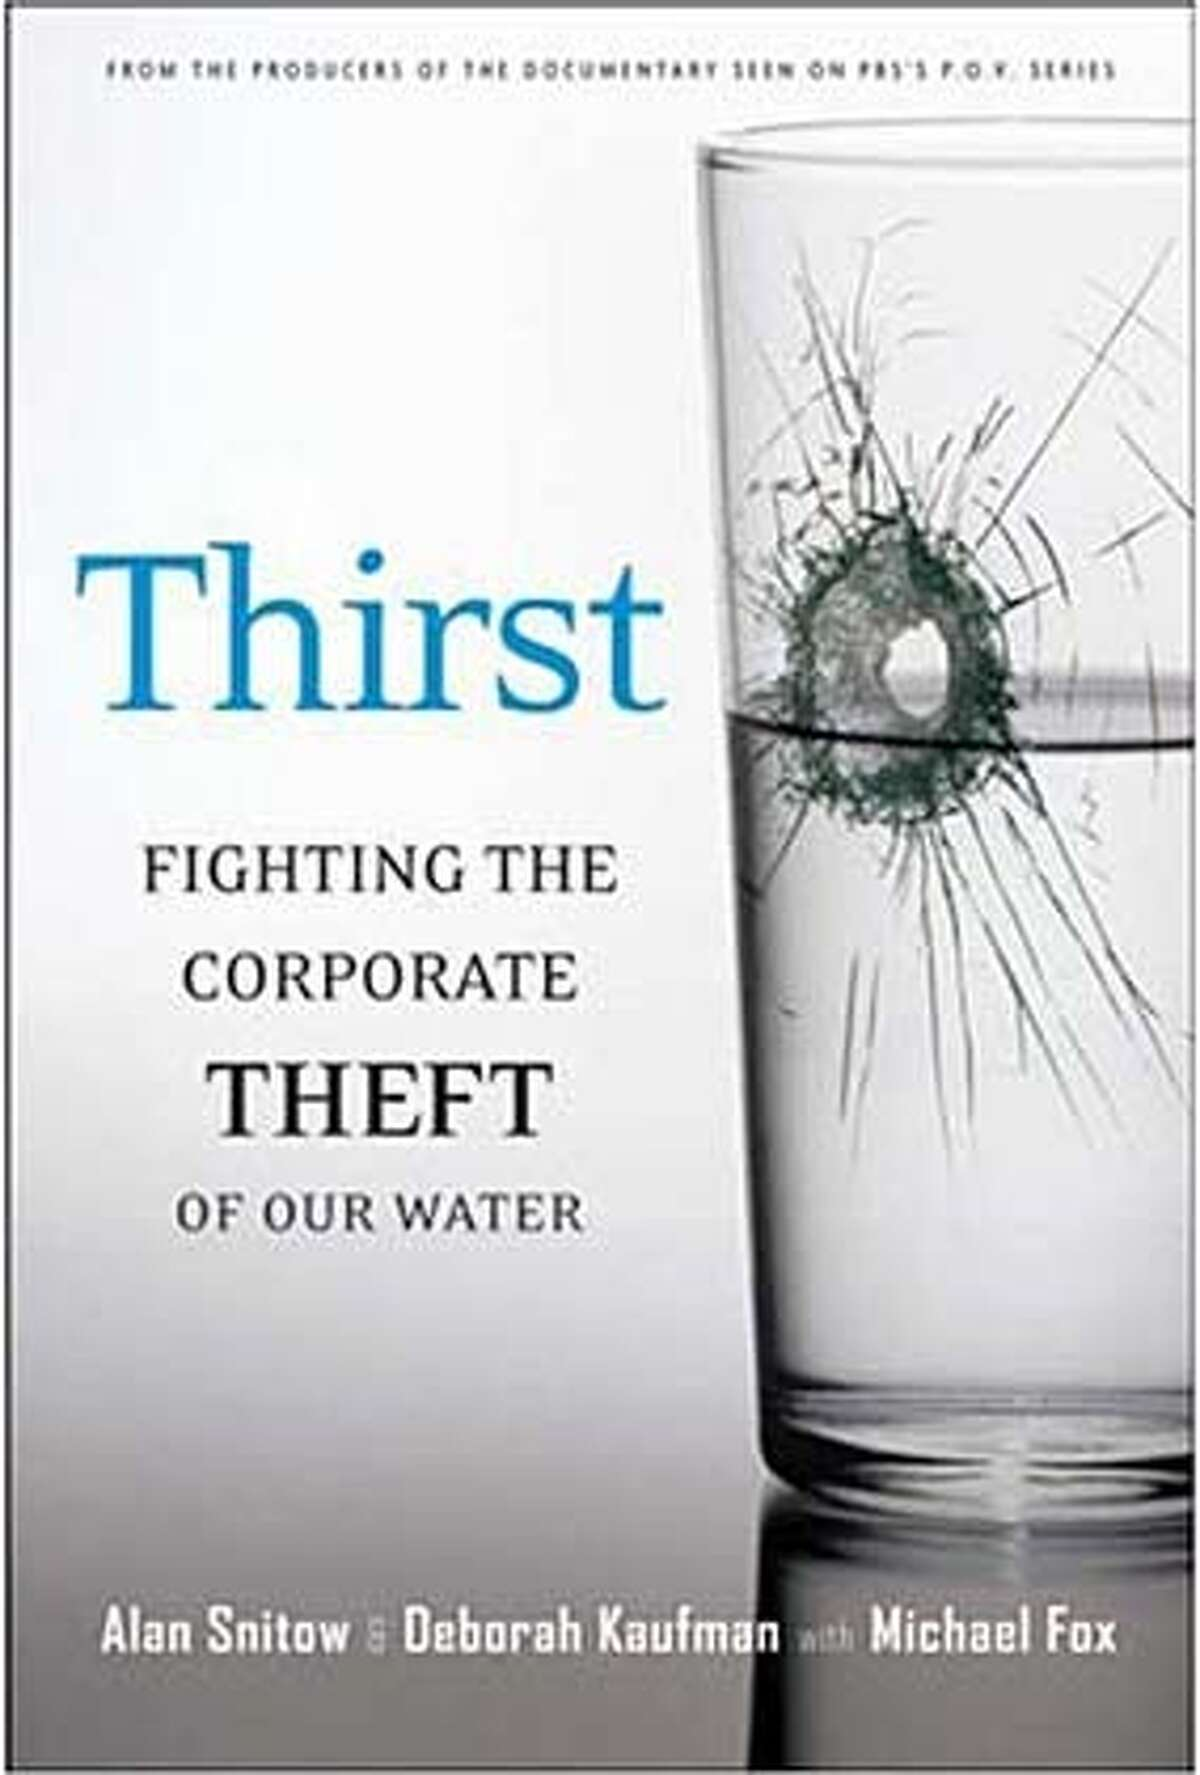 """Book cover art for, """"Thirst: Fighting the Corporate Theft of Our Water"""" (Hardcover) by Alan Snitow (Author), Deborah Kaufman (Author), Michael Fox (Author)."""